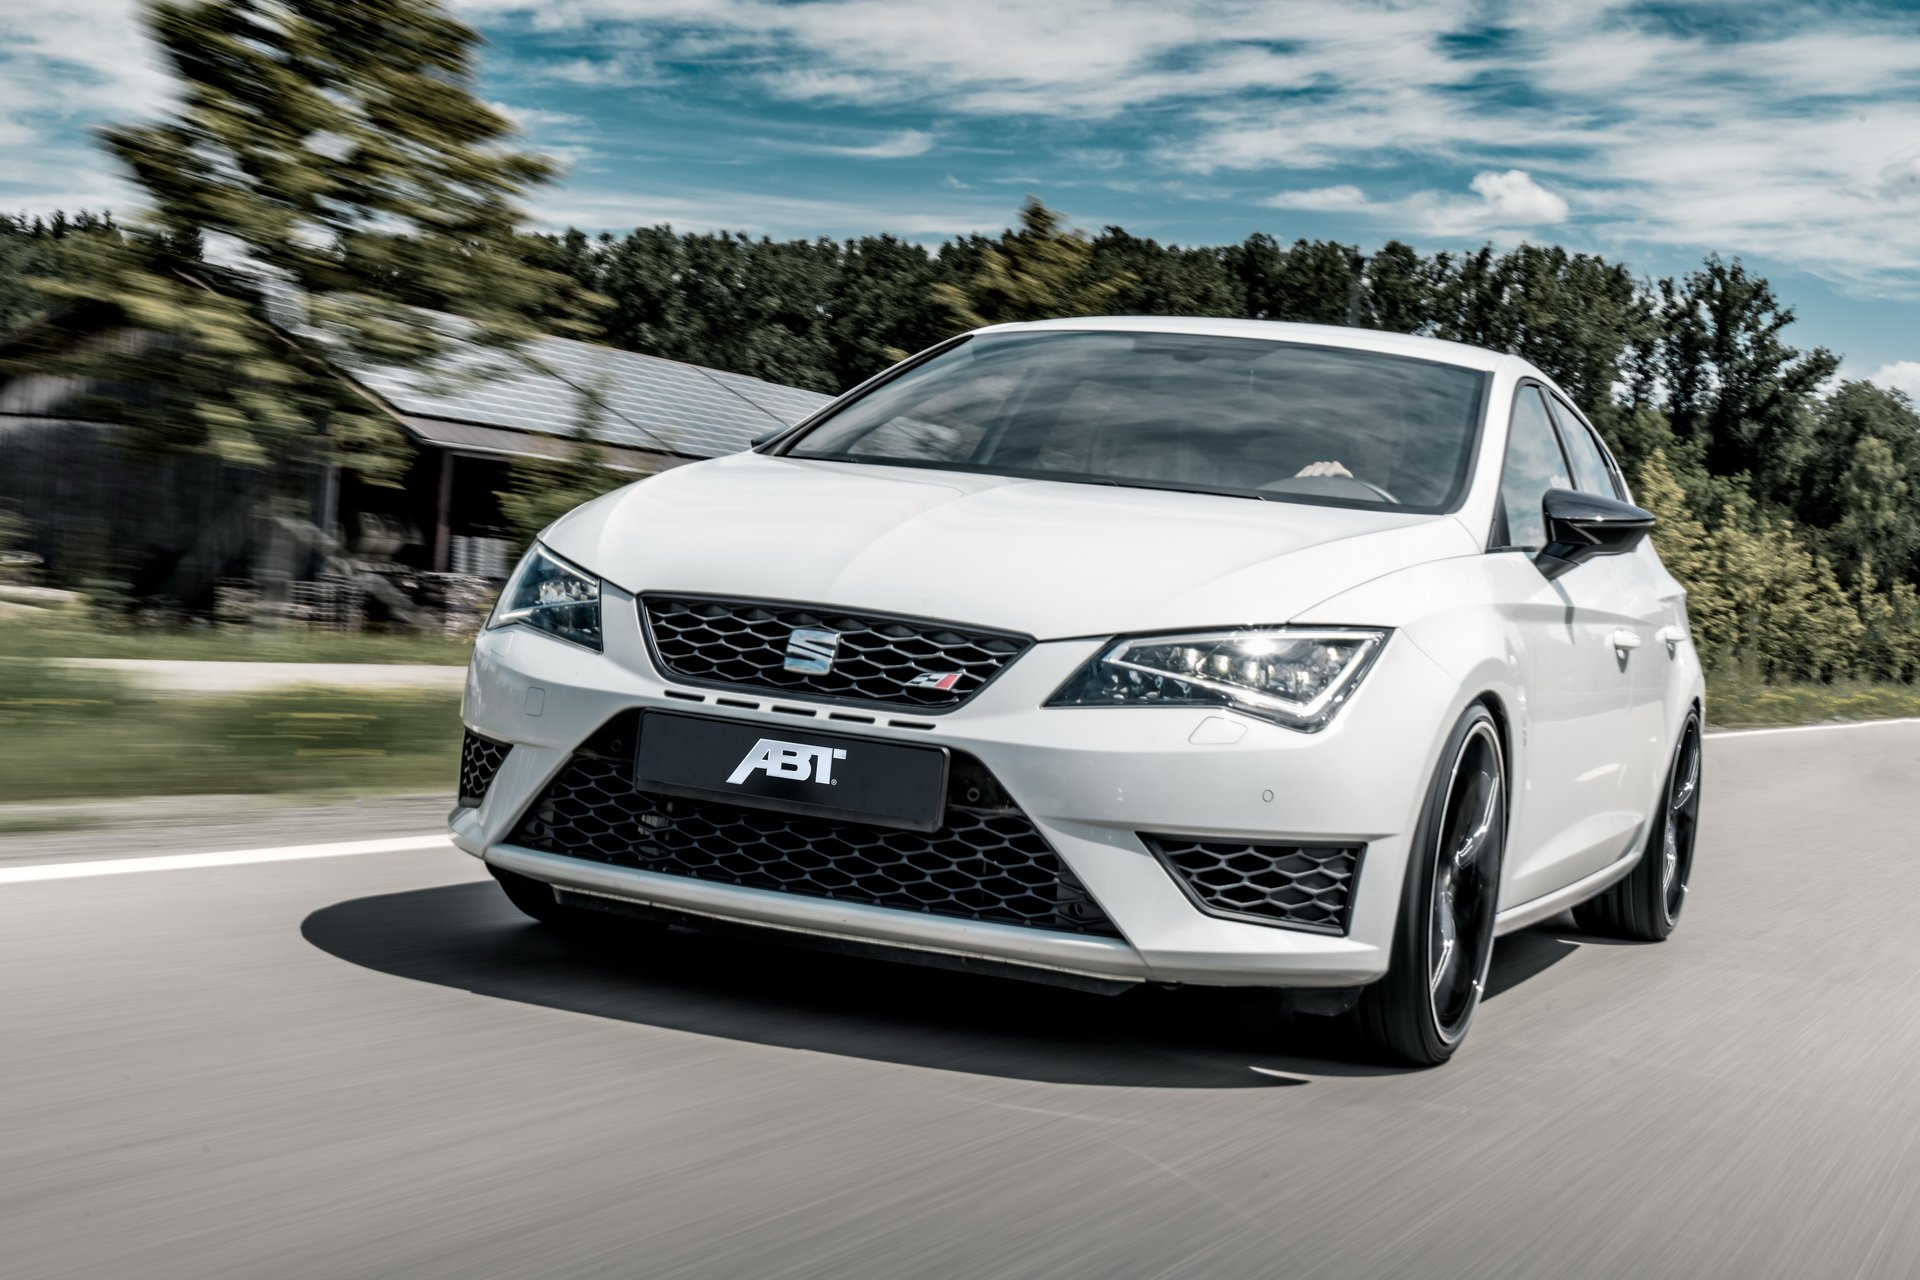 Seat Leon Cupra by ABT (1)